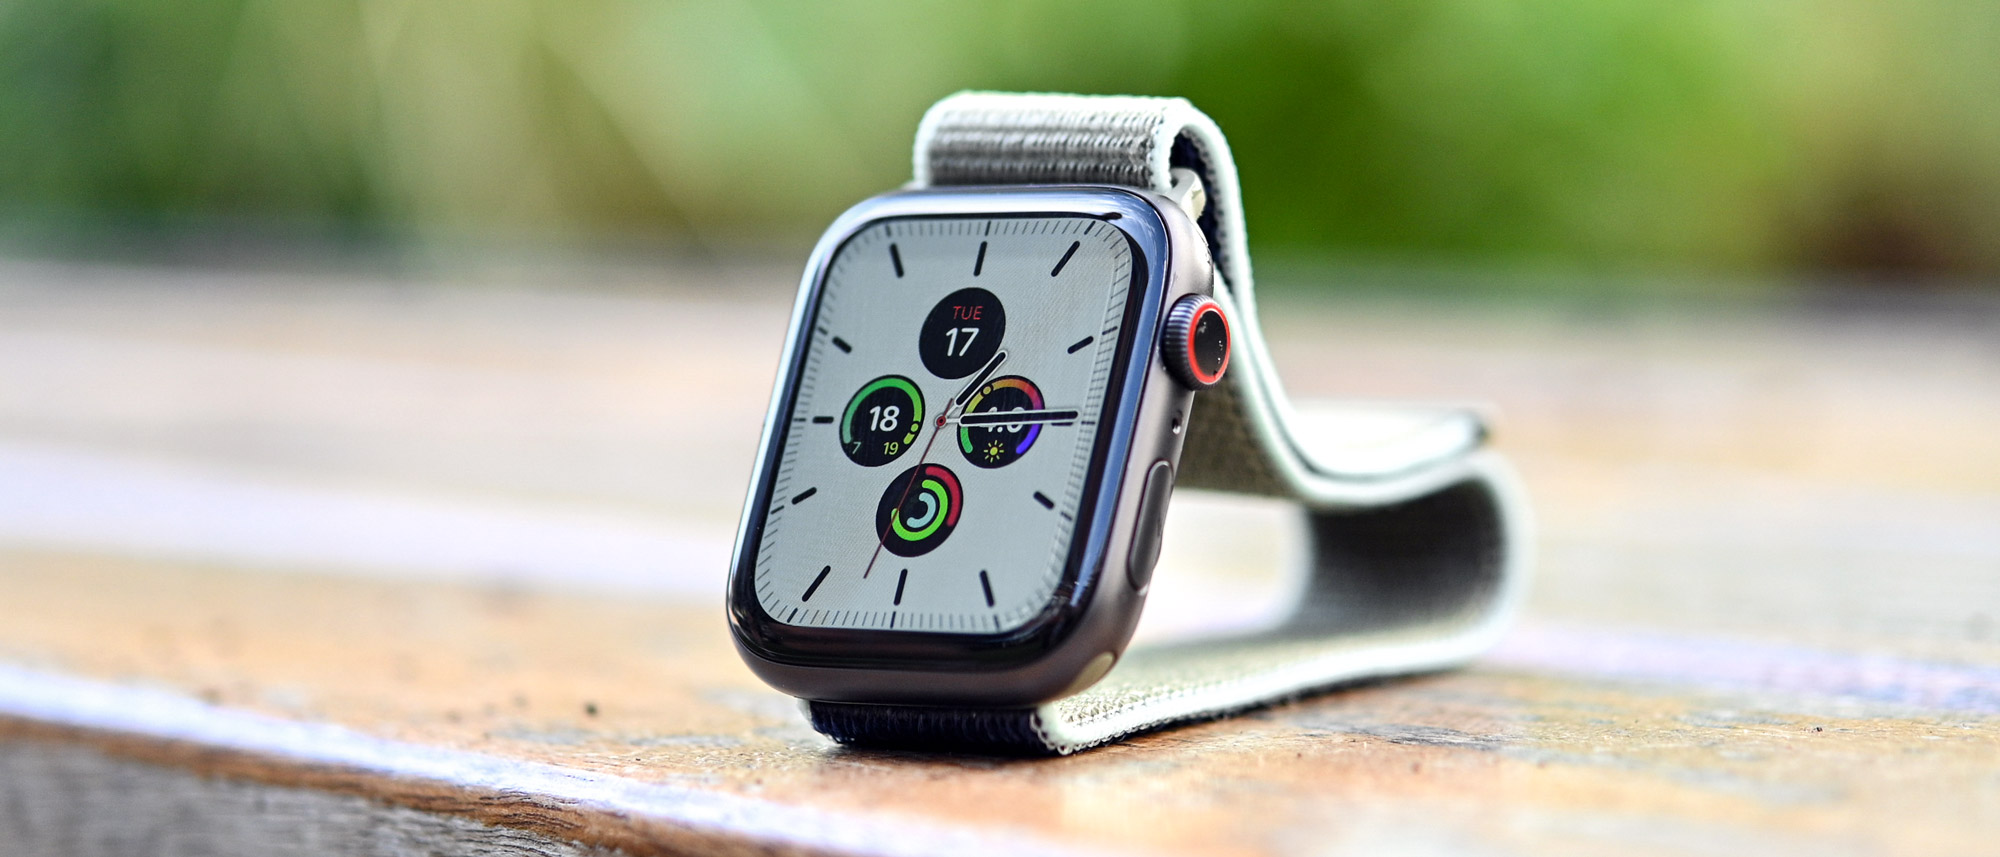 Best Early Black Friday Apple Watch Deals Watchapplist